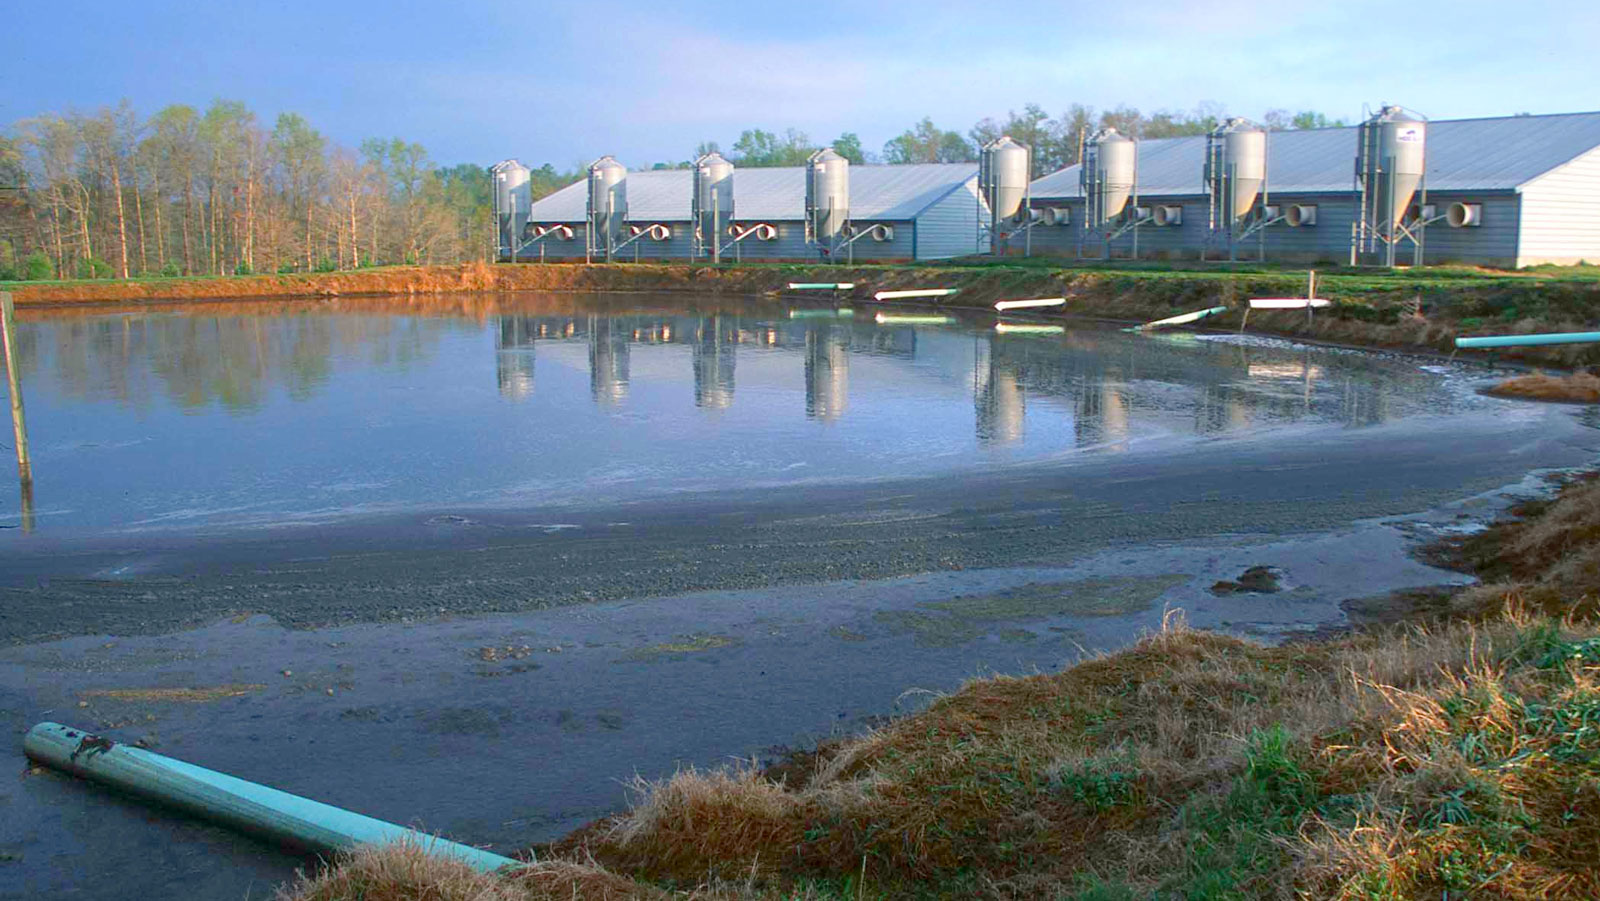 <h4>Animal waste lagoons</h4> <h5>In 2018, Hurricane Florence caused at least 32 hog waste lagoon overflows in North Carolina. And a study published in 2000 found that, from 1995 to 1998 in just 10 surveyed states, there were more than 1,000 animal waste spills that killed 13 million fish.</h5><em>Natural Resources Conservation Service Georgia</em>